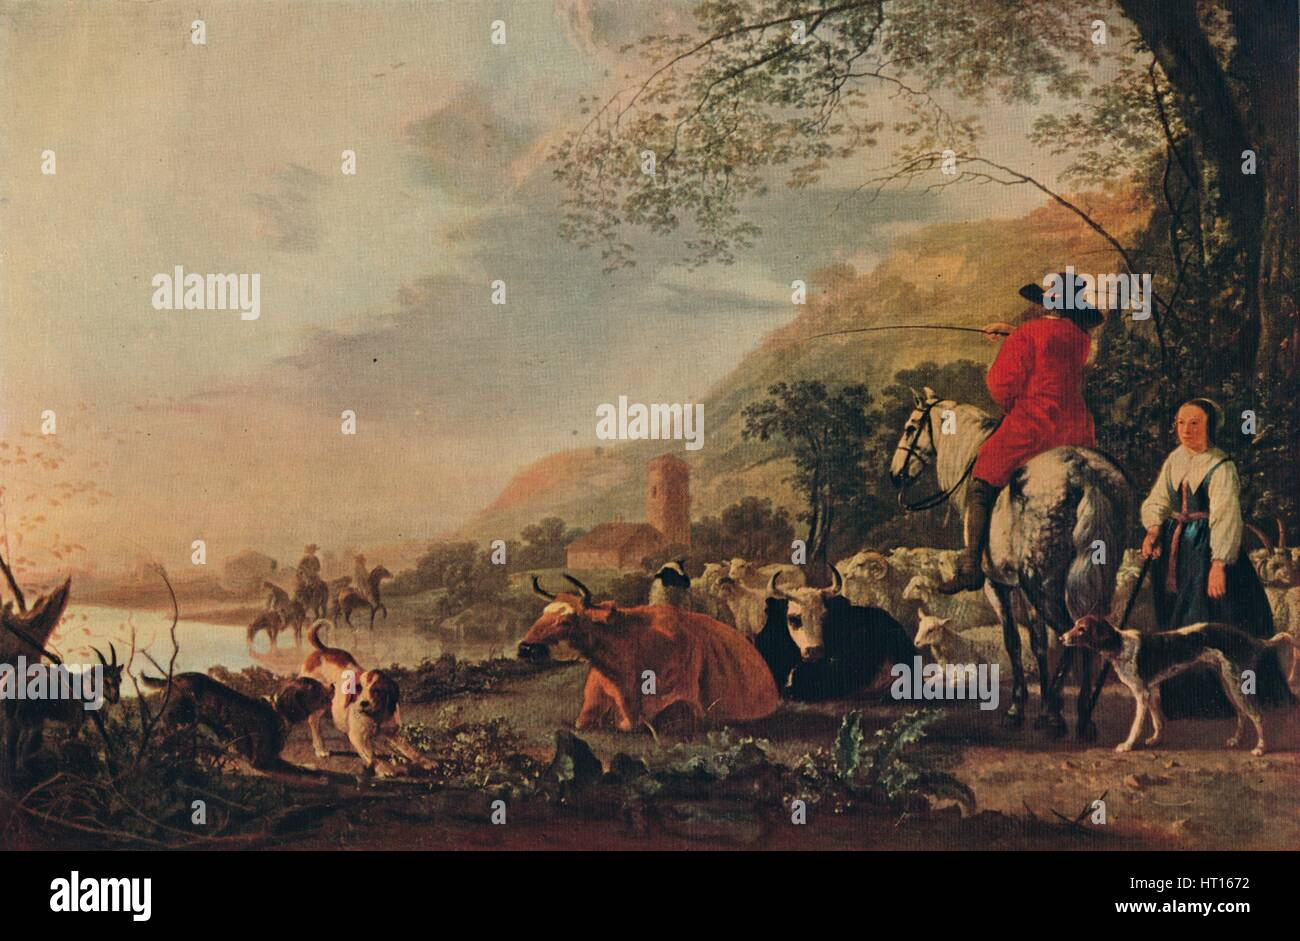 'A Hilly Landscape with Figures', c1655. Artist: Aelbert Cuyp. - Stock Image